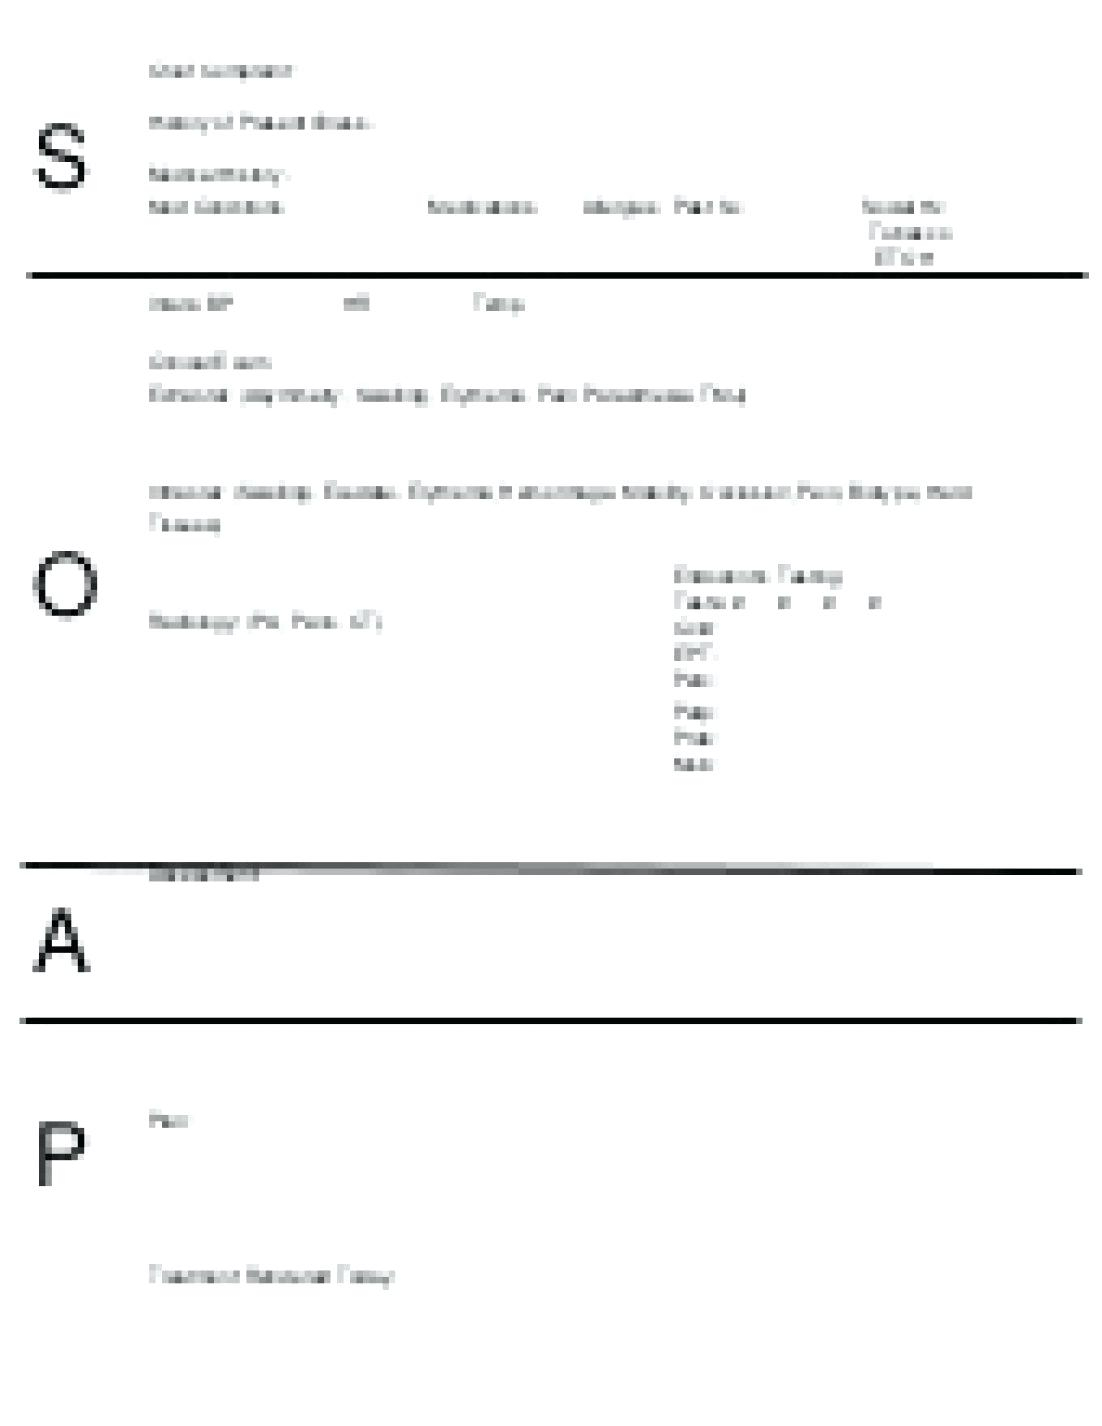 018 Blank Soap Note Template Perfect Ems Format Staggering Regarding Soap Note Template Word